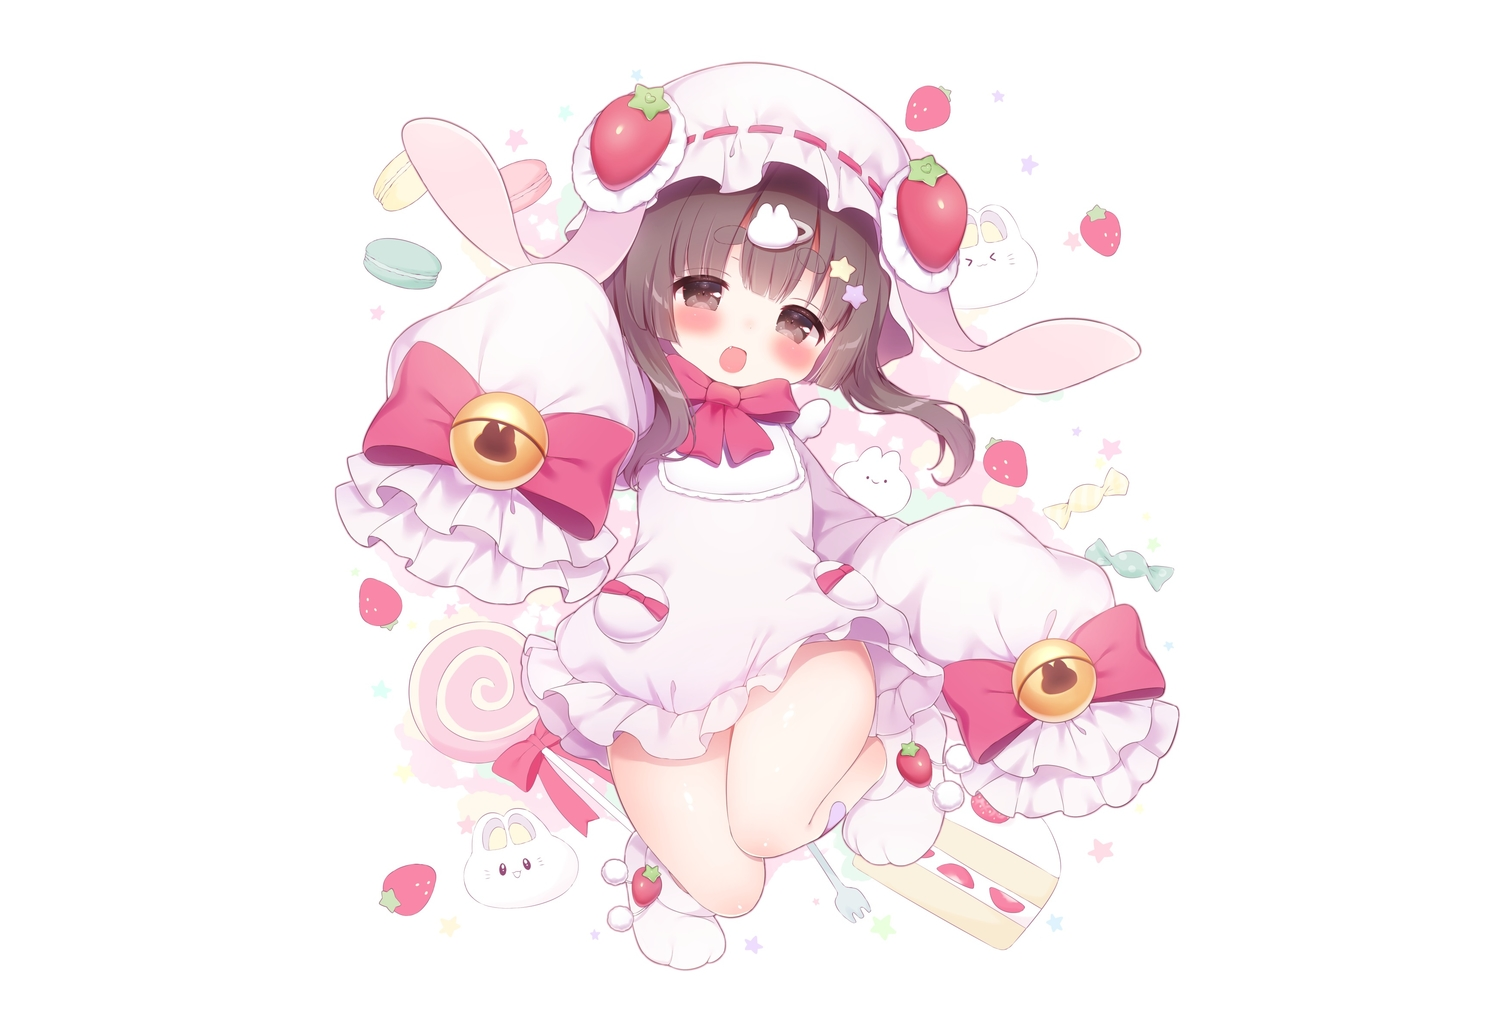 animal_ears bell blush bow brown_eyes brown_hair bunny bunny_ears candy dress fang food fruit hat koma_momozu loli lollipop short_hair strawberry white